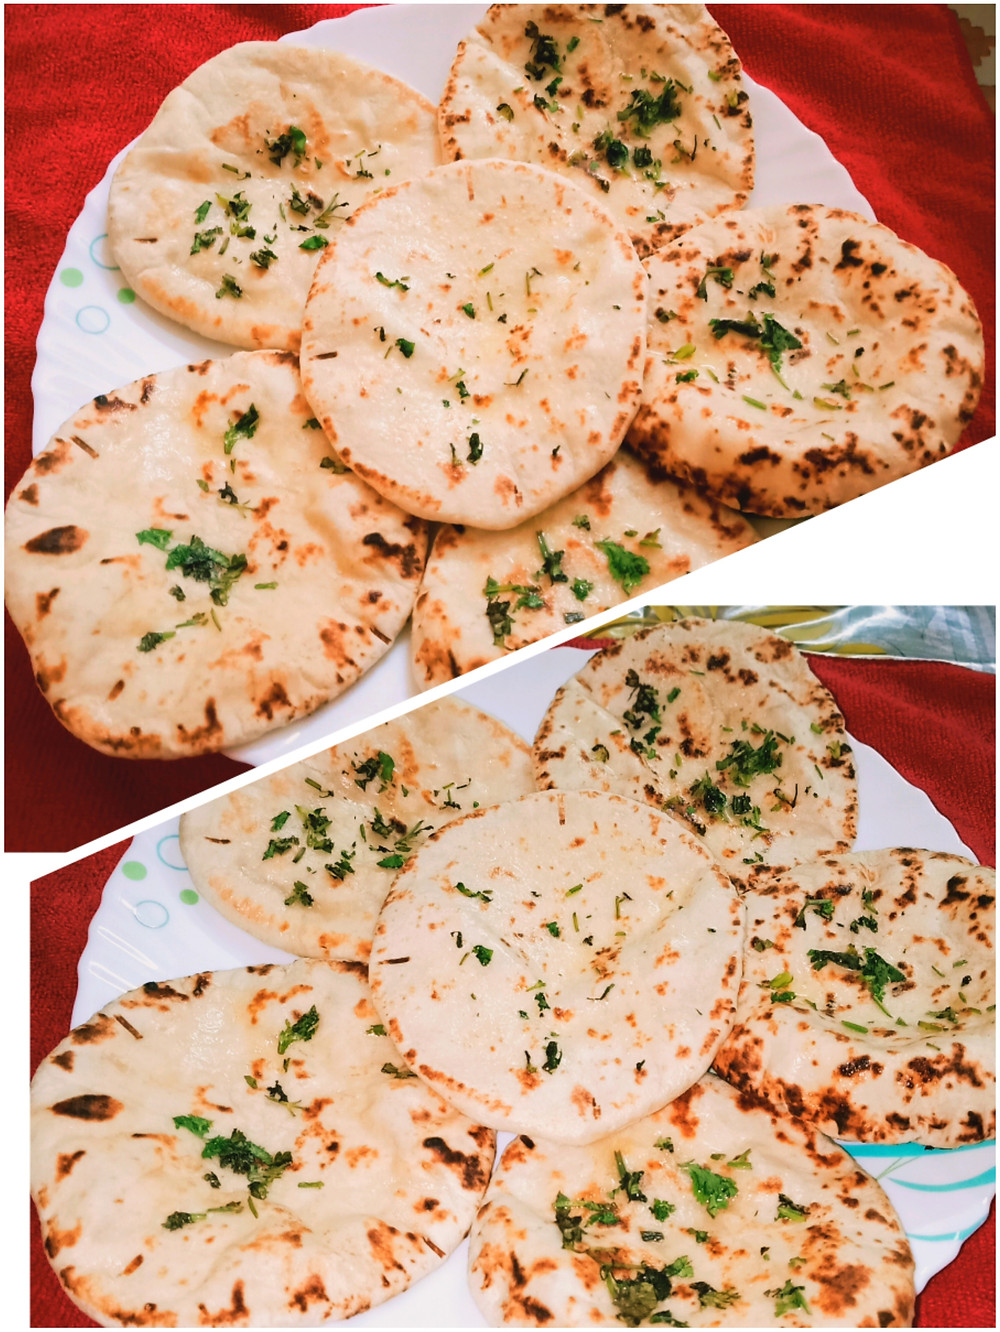 It is made with basic ingredients like flour, oil, yeast, milk. One can also make naan without yeast but I prefer the version with yeast.